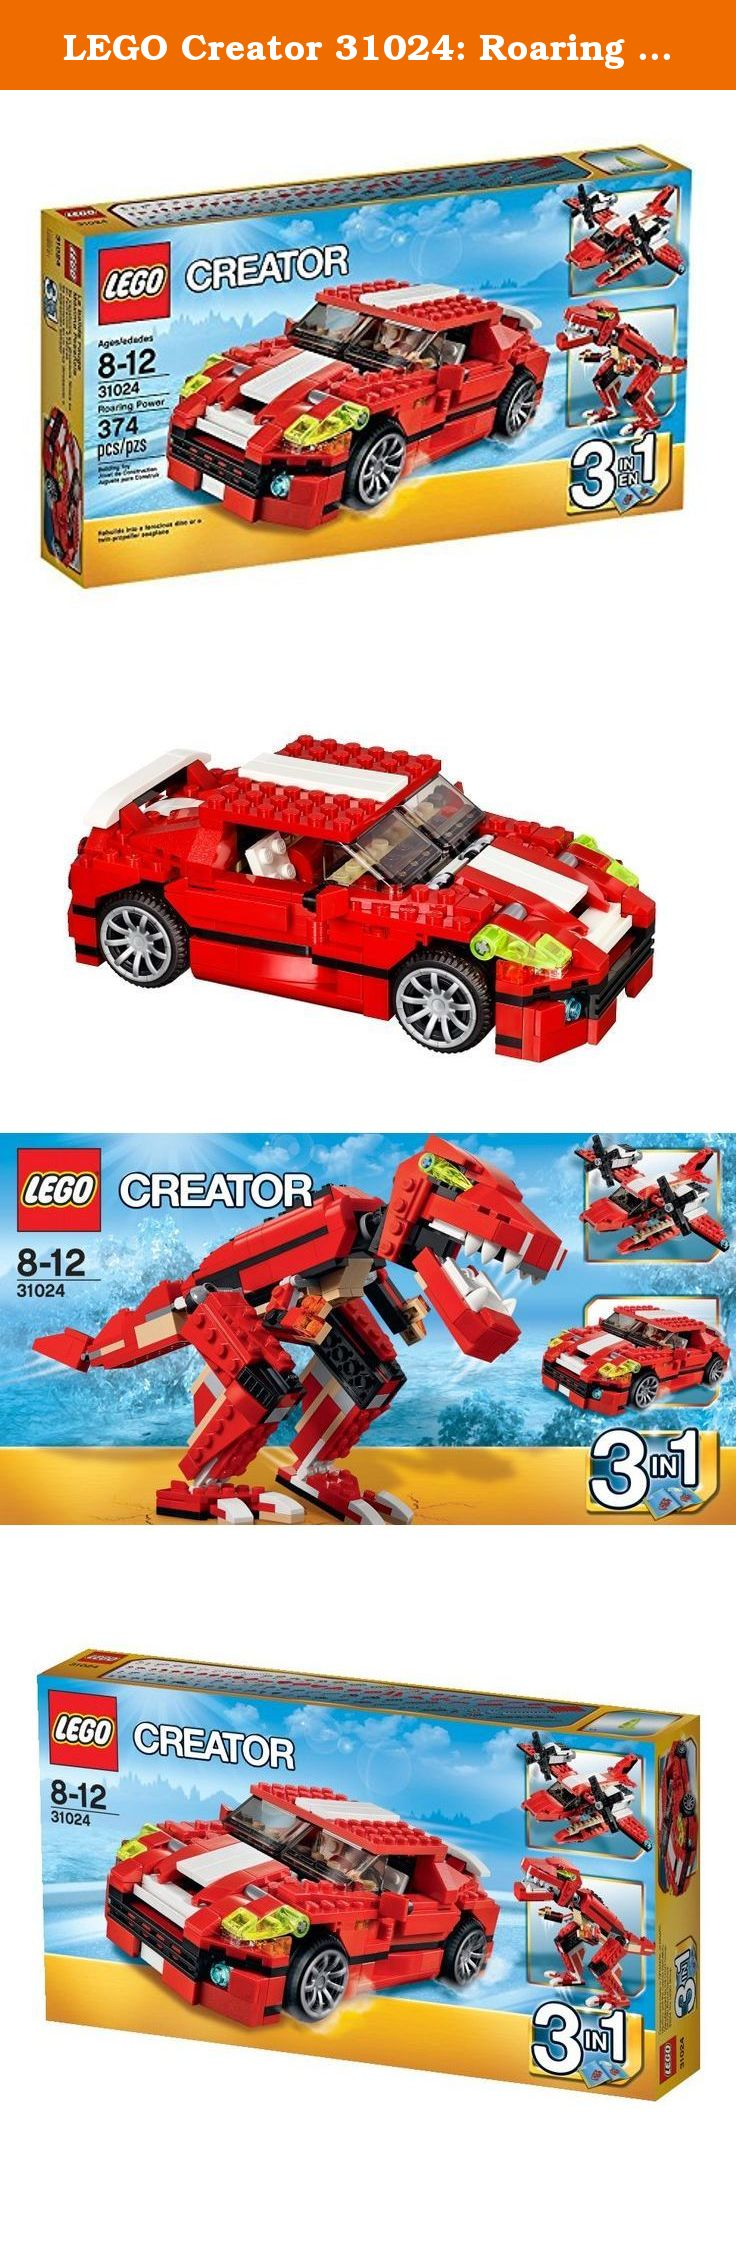 Lego car toys  LEGO Creator  Roaring Power Feel the awesome power from the